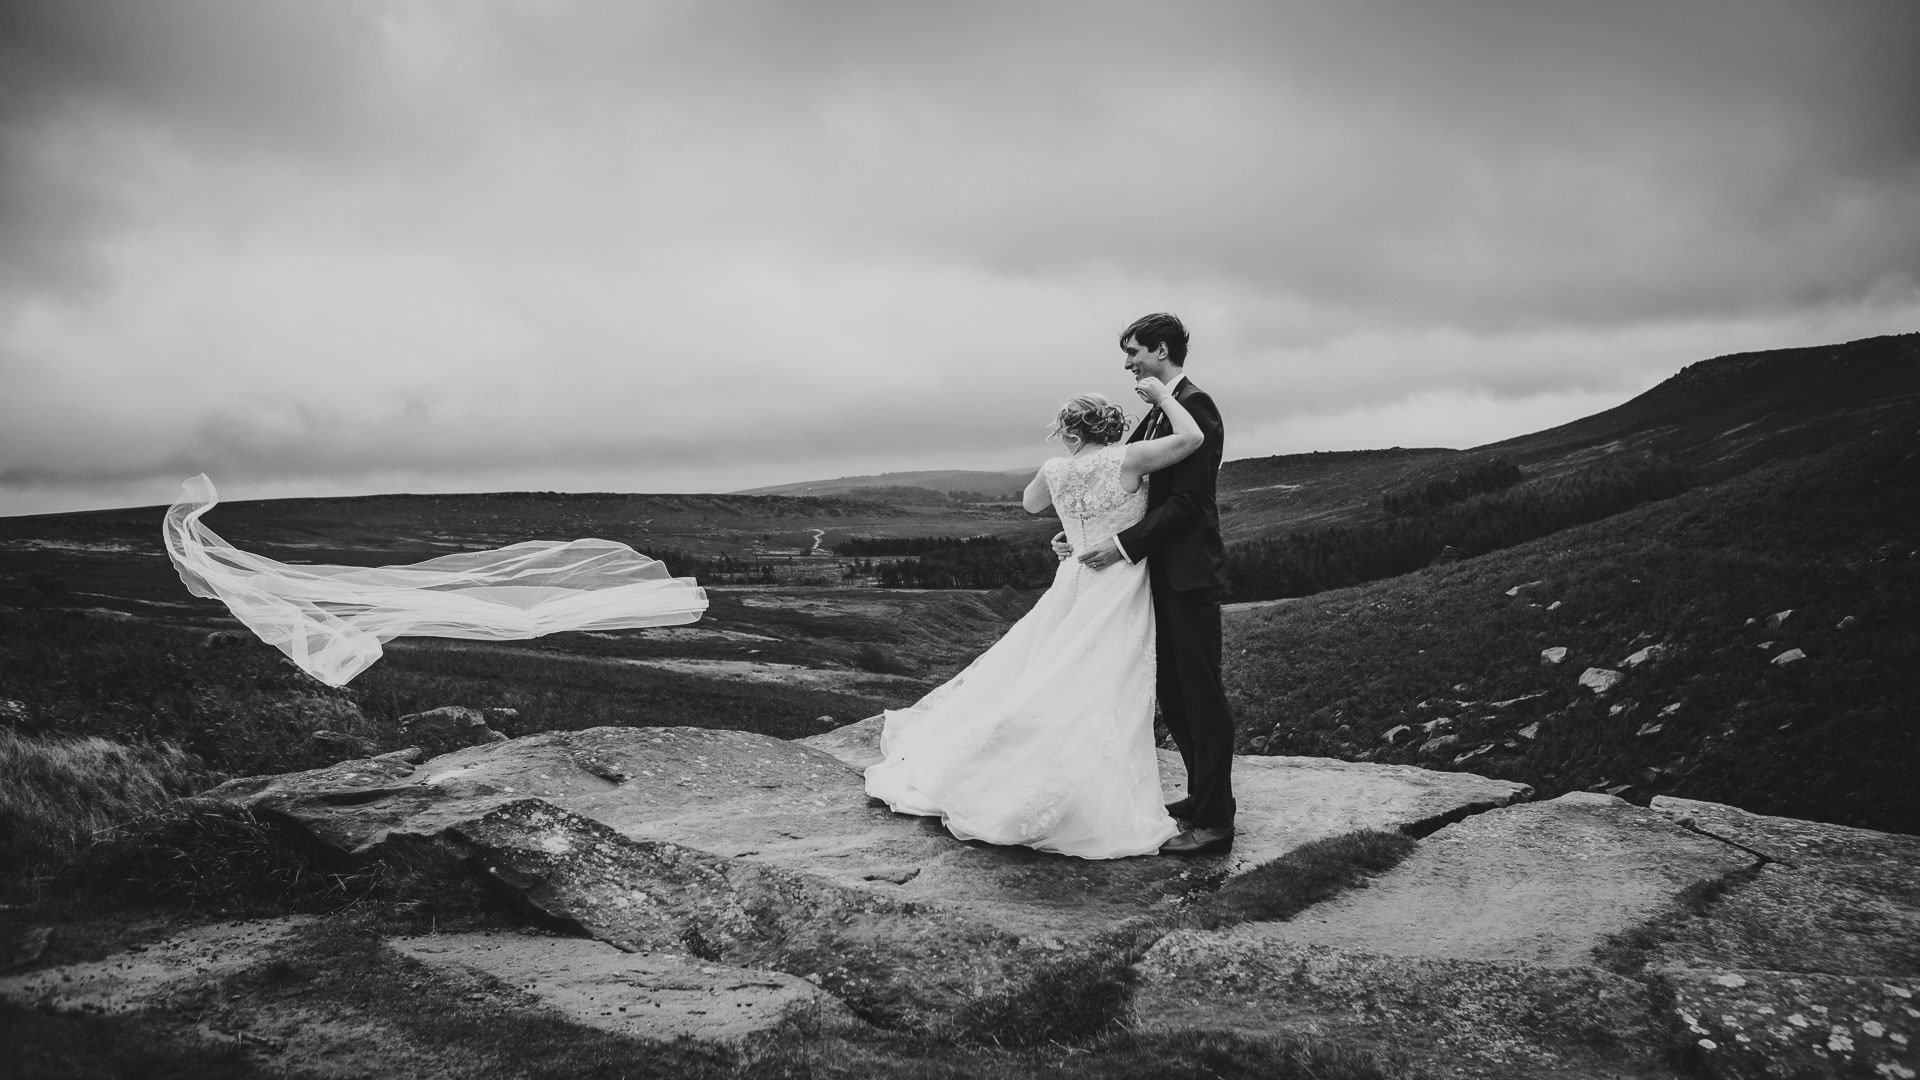 Wedding photographer based in Peak District, Tierney Photography.